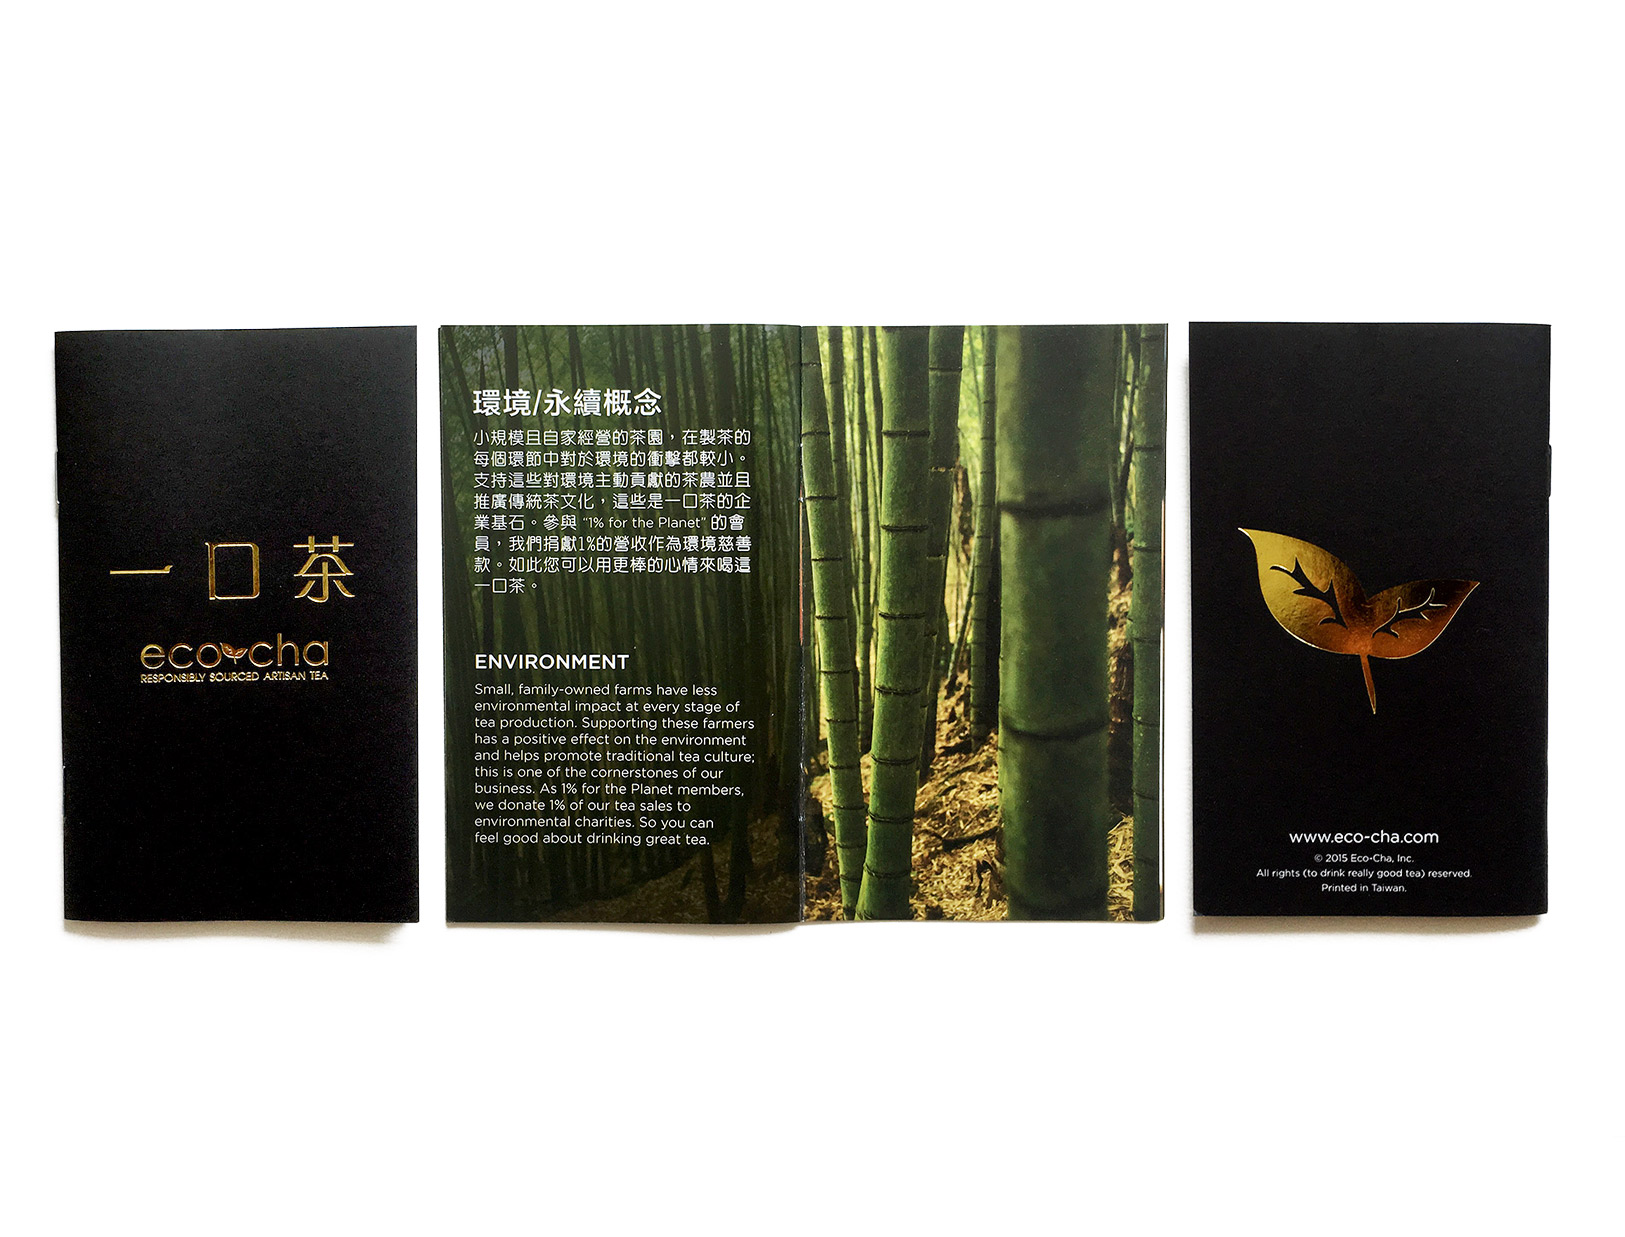 Eco Cha Product Information Booklet